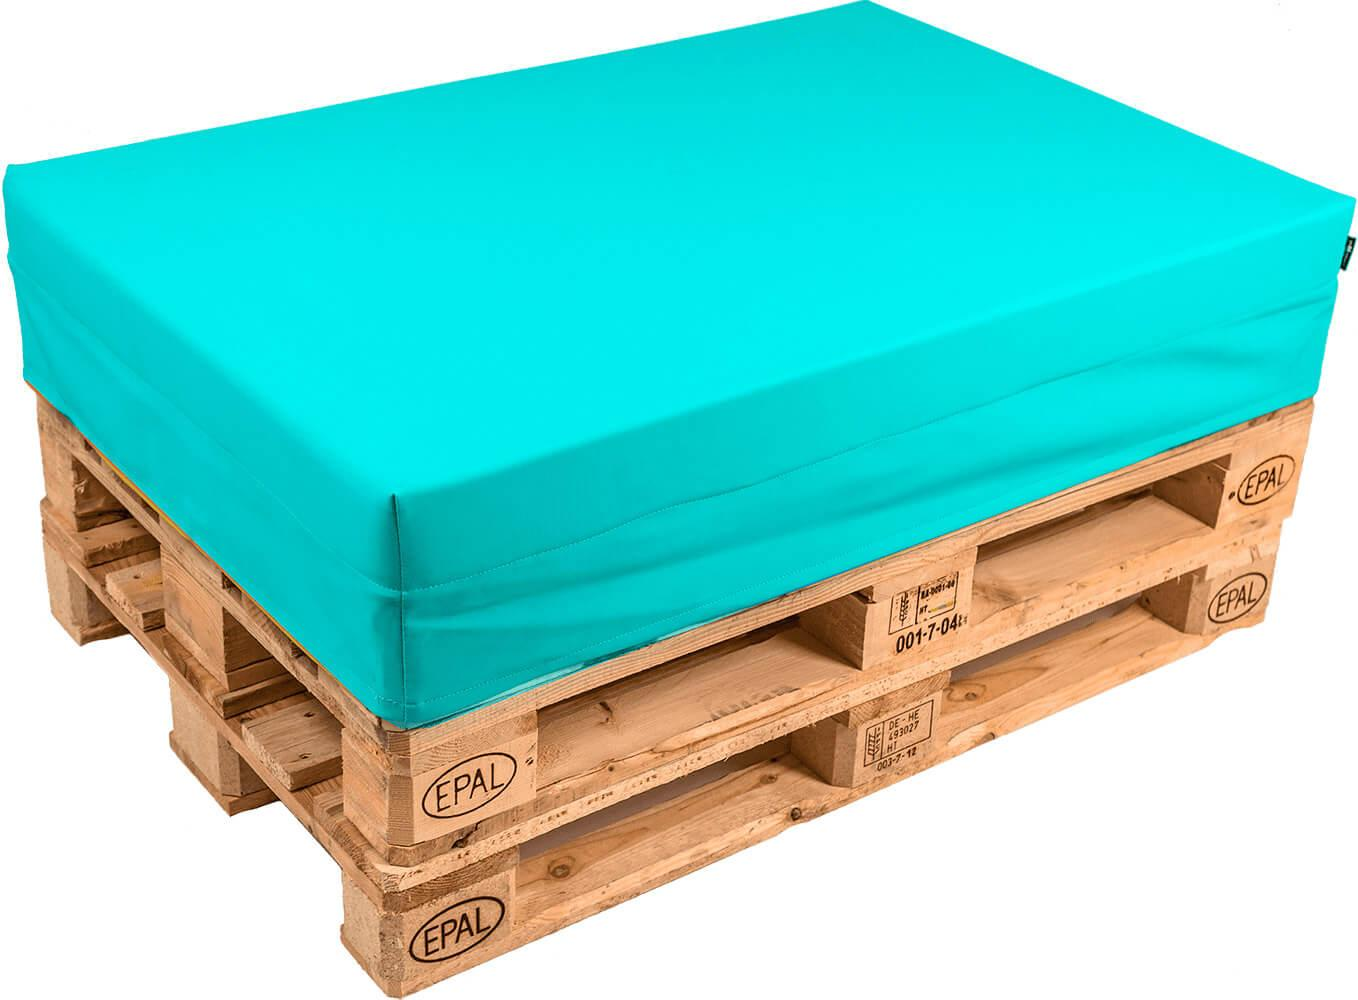 Image of Cuscino per Pallet 120x80cm in Ecopelle Pomodone Turchese